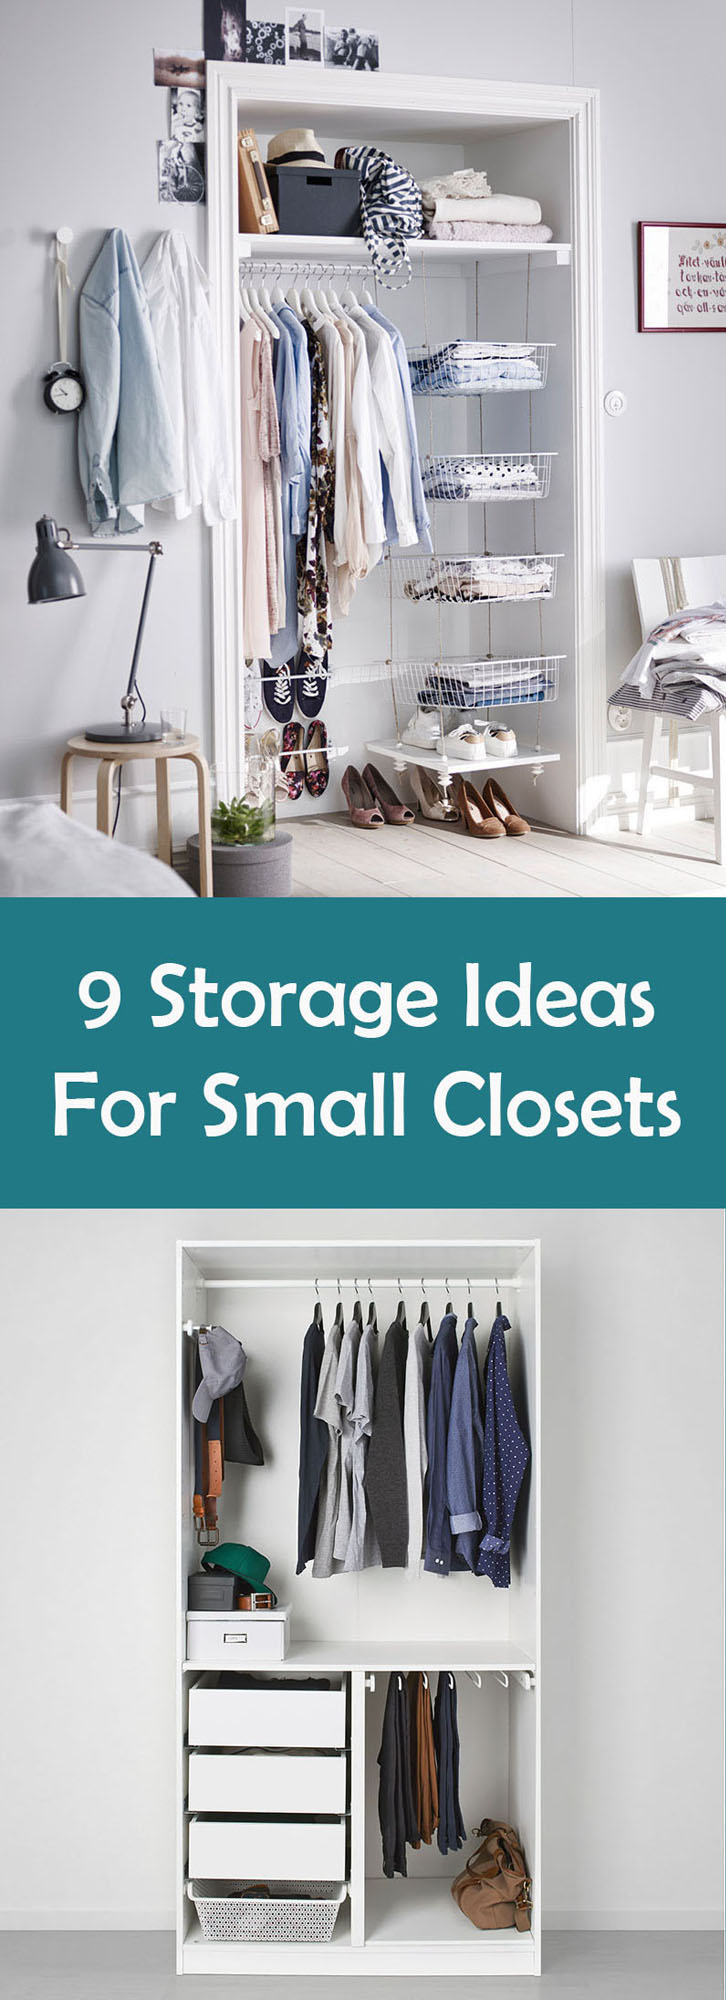 9 storage ideas for small closets contemporist for Storage ideas for small bedrooms with no closet